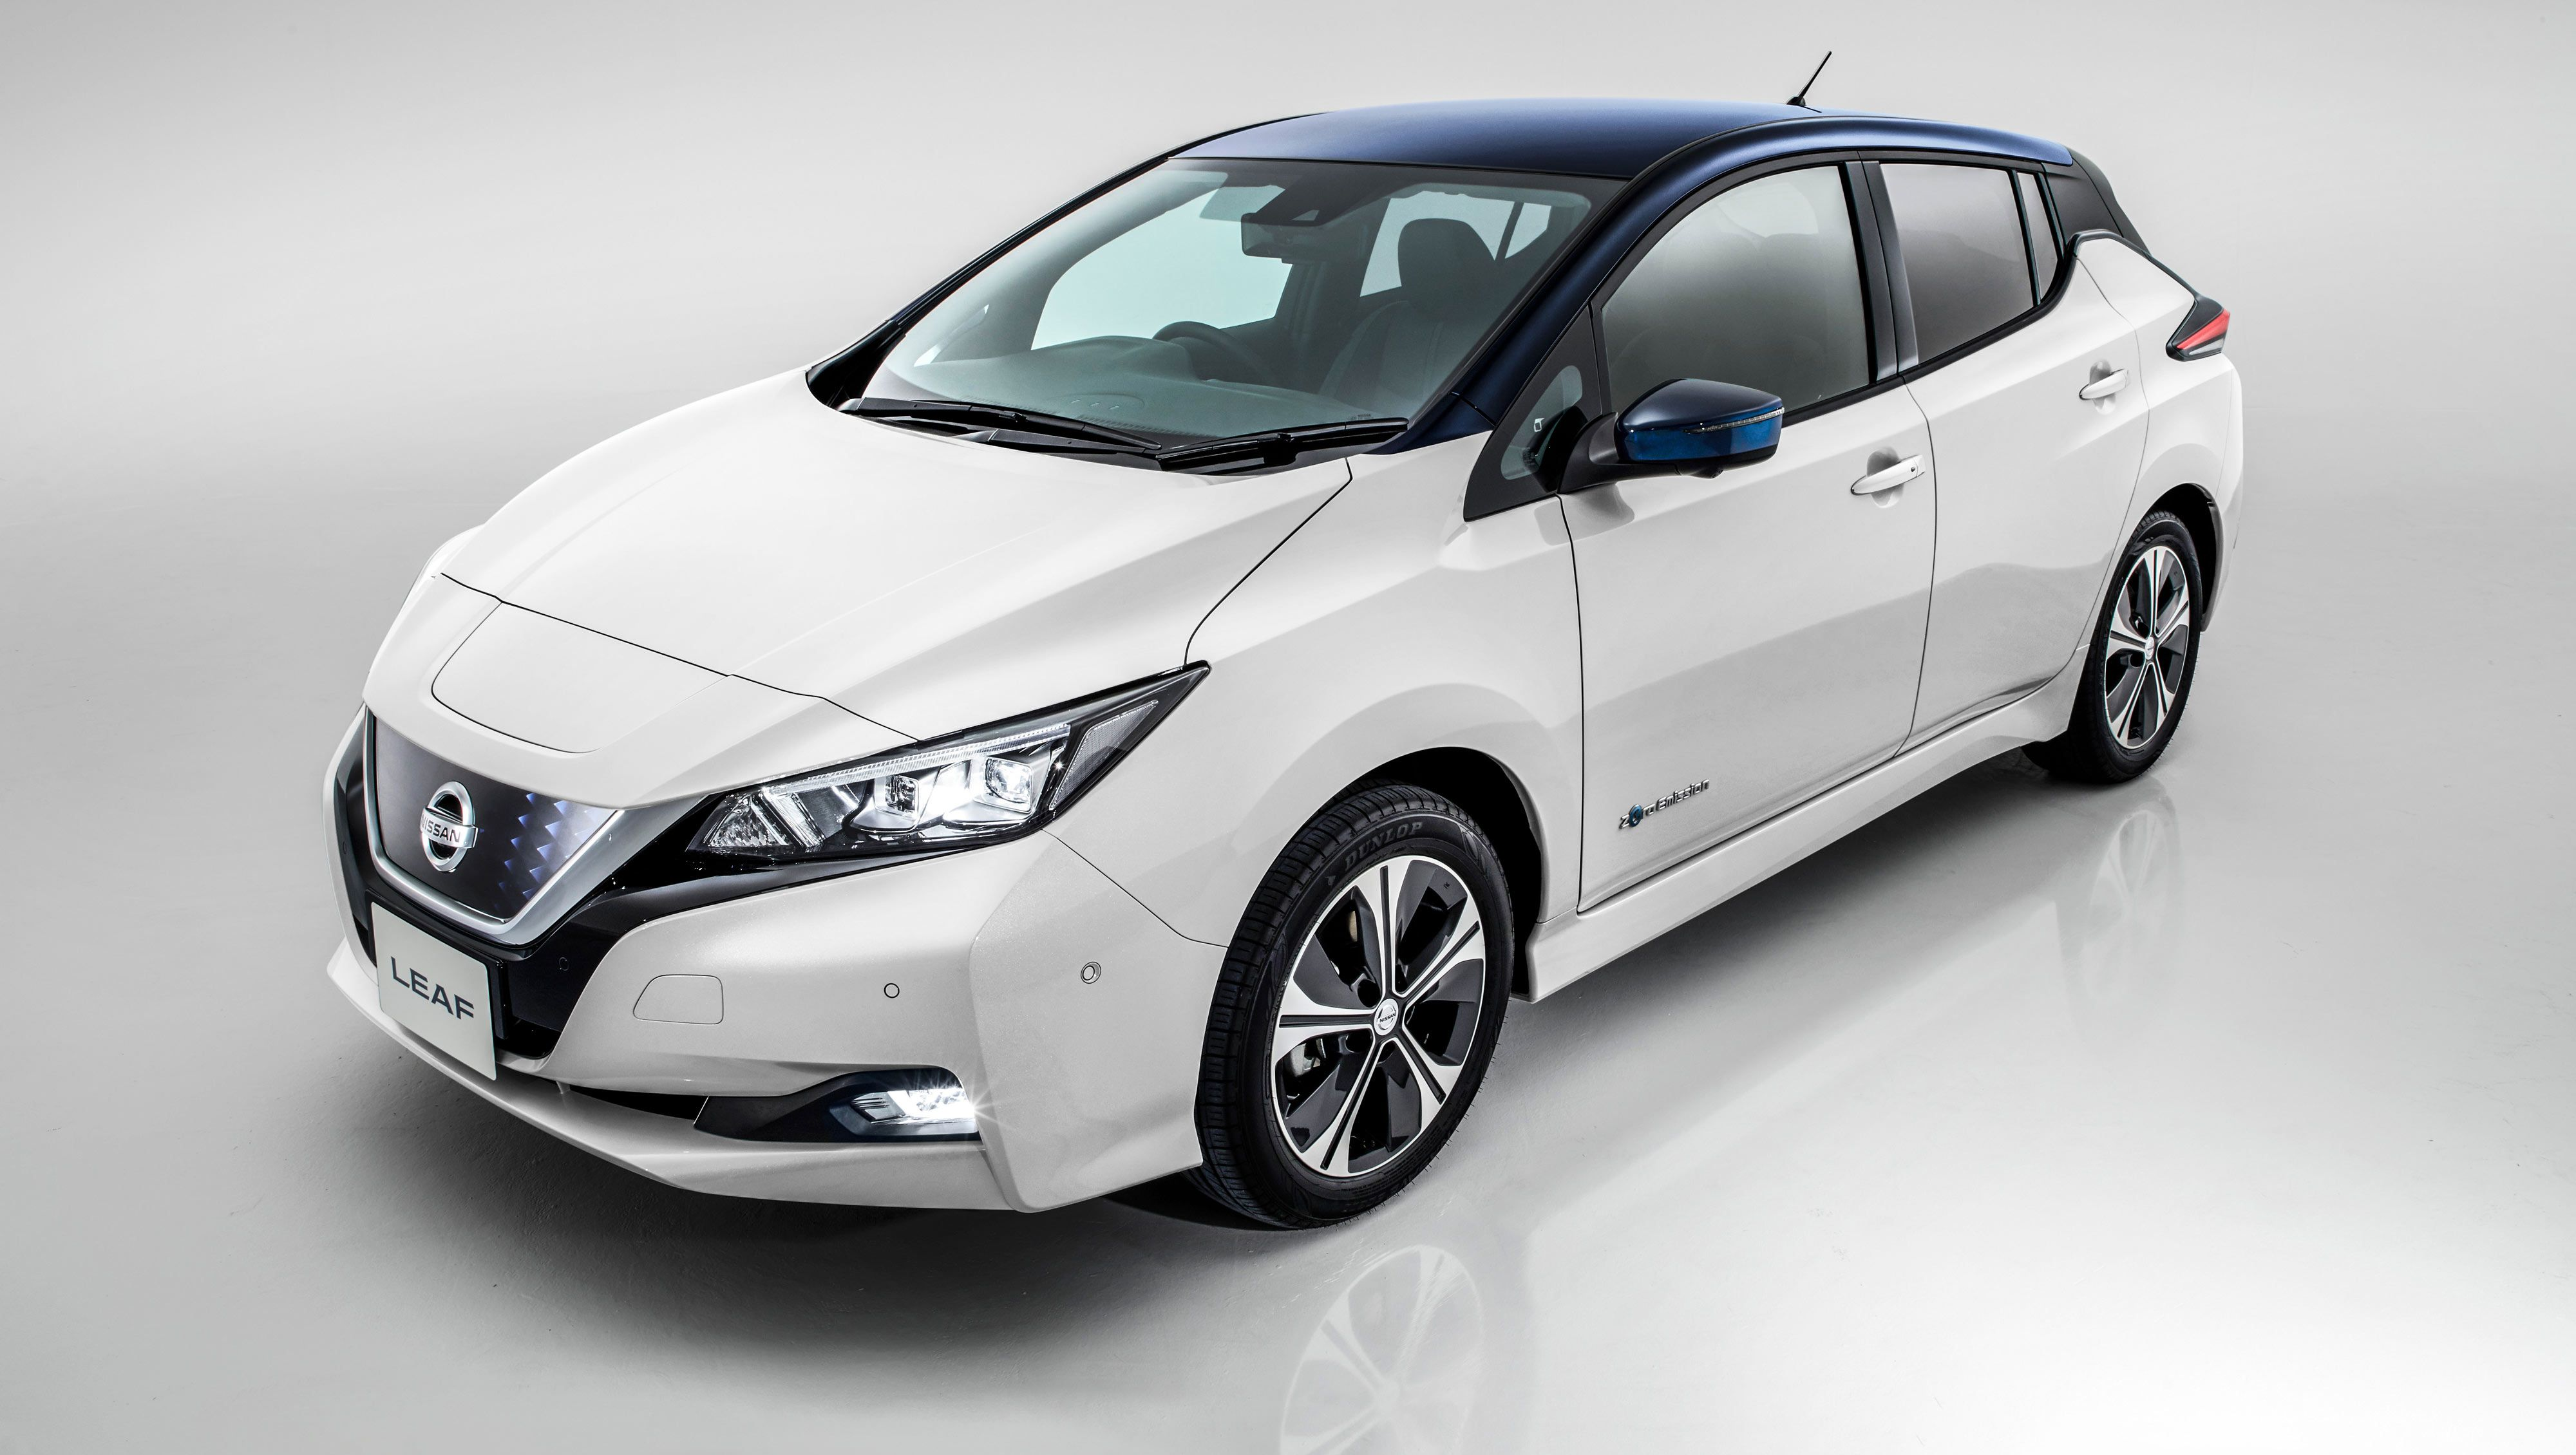 Can The New Nissan Leaf Compete With The Chevy Bolt And Tesla Model 3